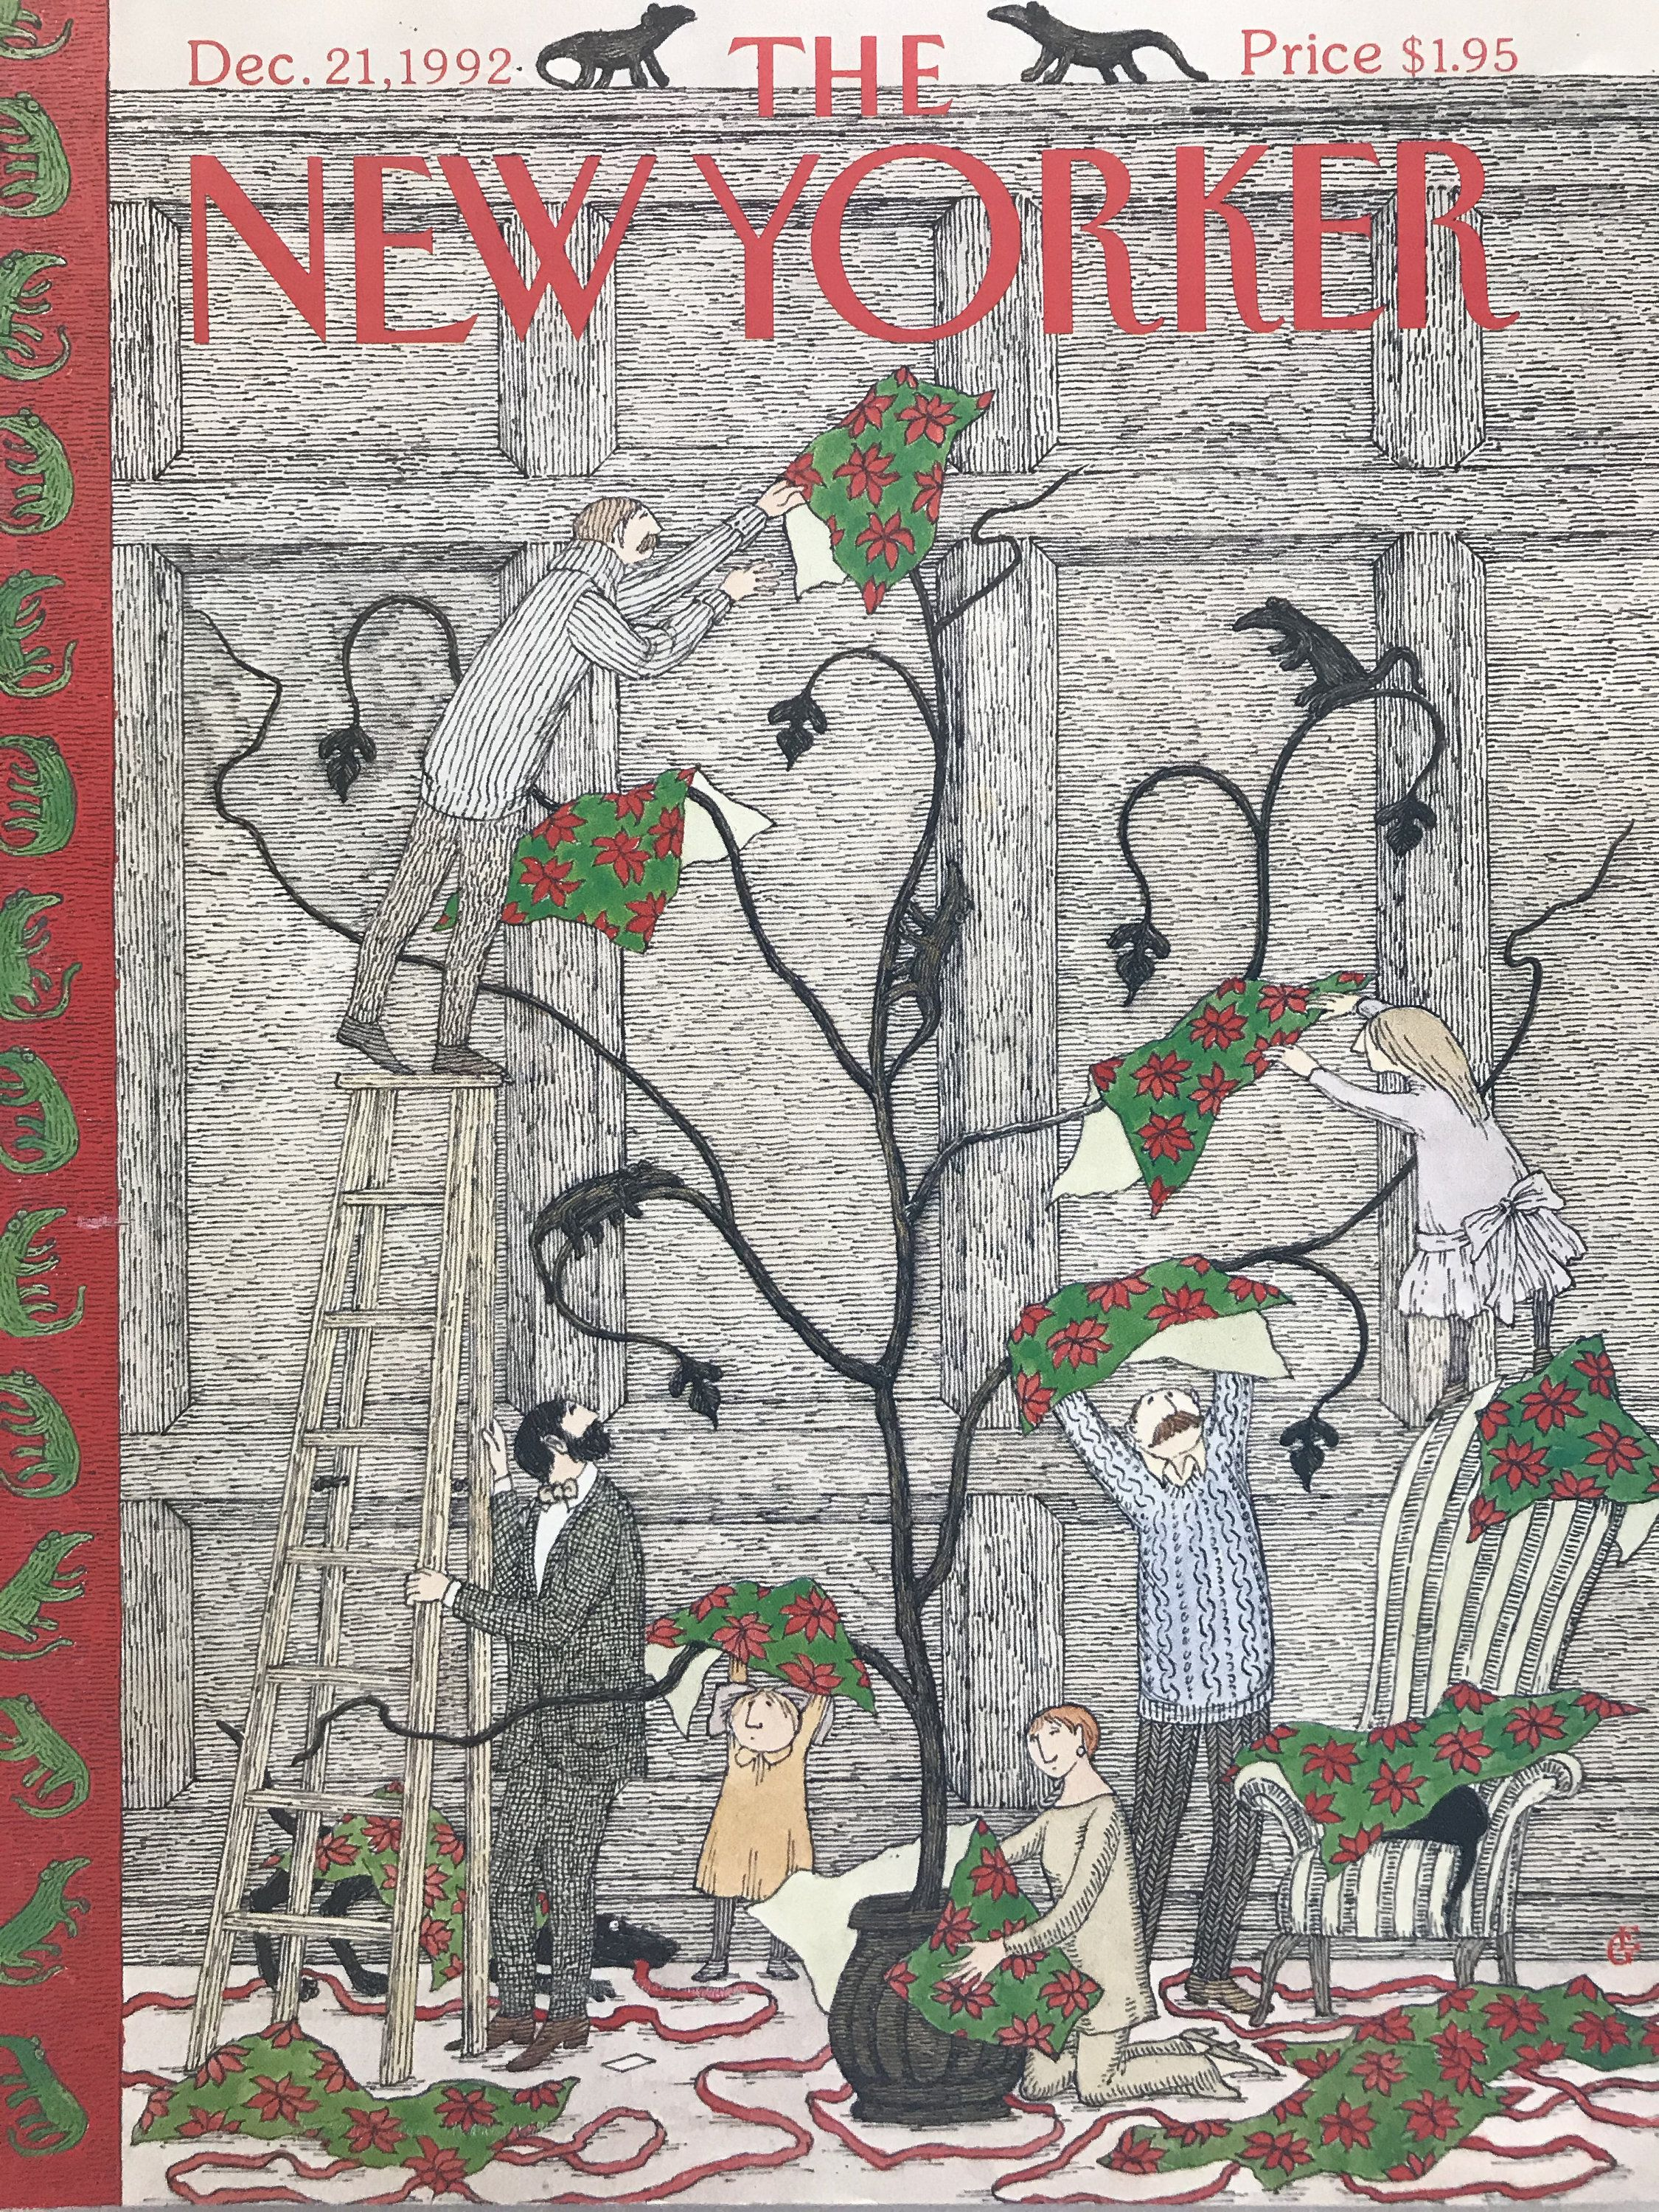 The New Yorker Christmas Cover 2020 RARE December 21 1992 The NEW YORKER cover only | Etsy in 2020